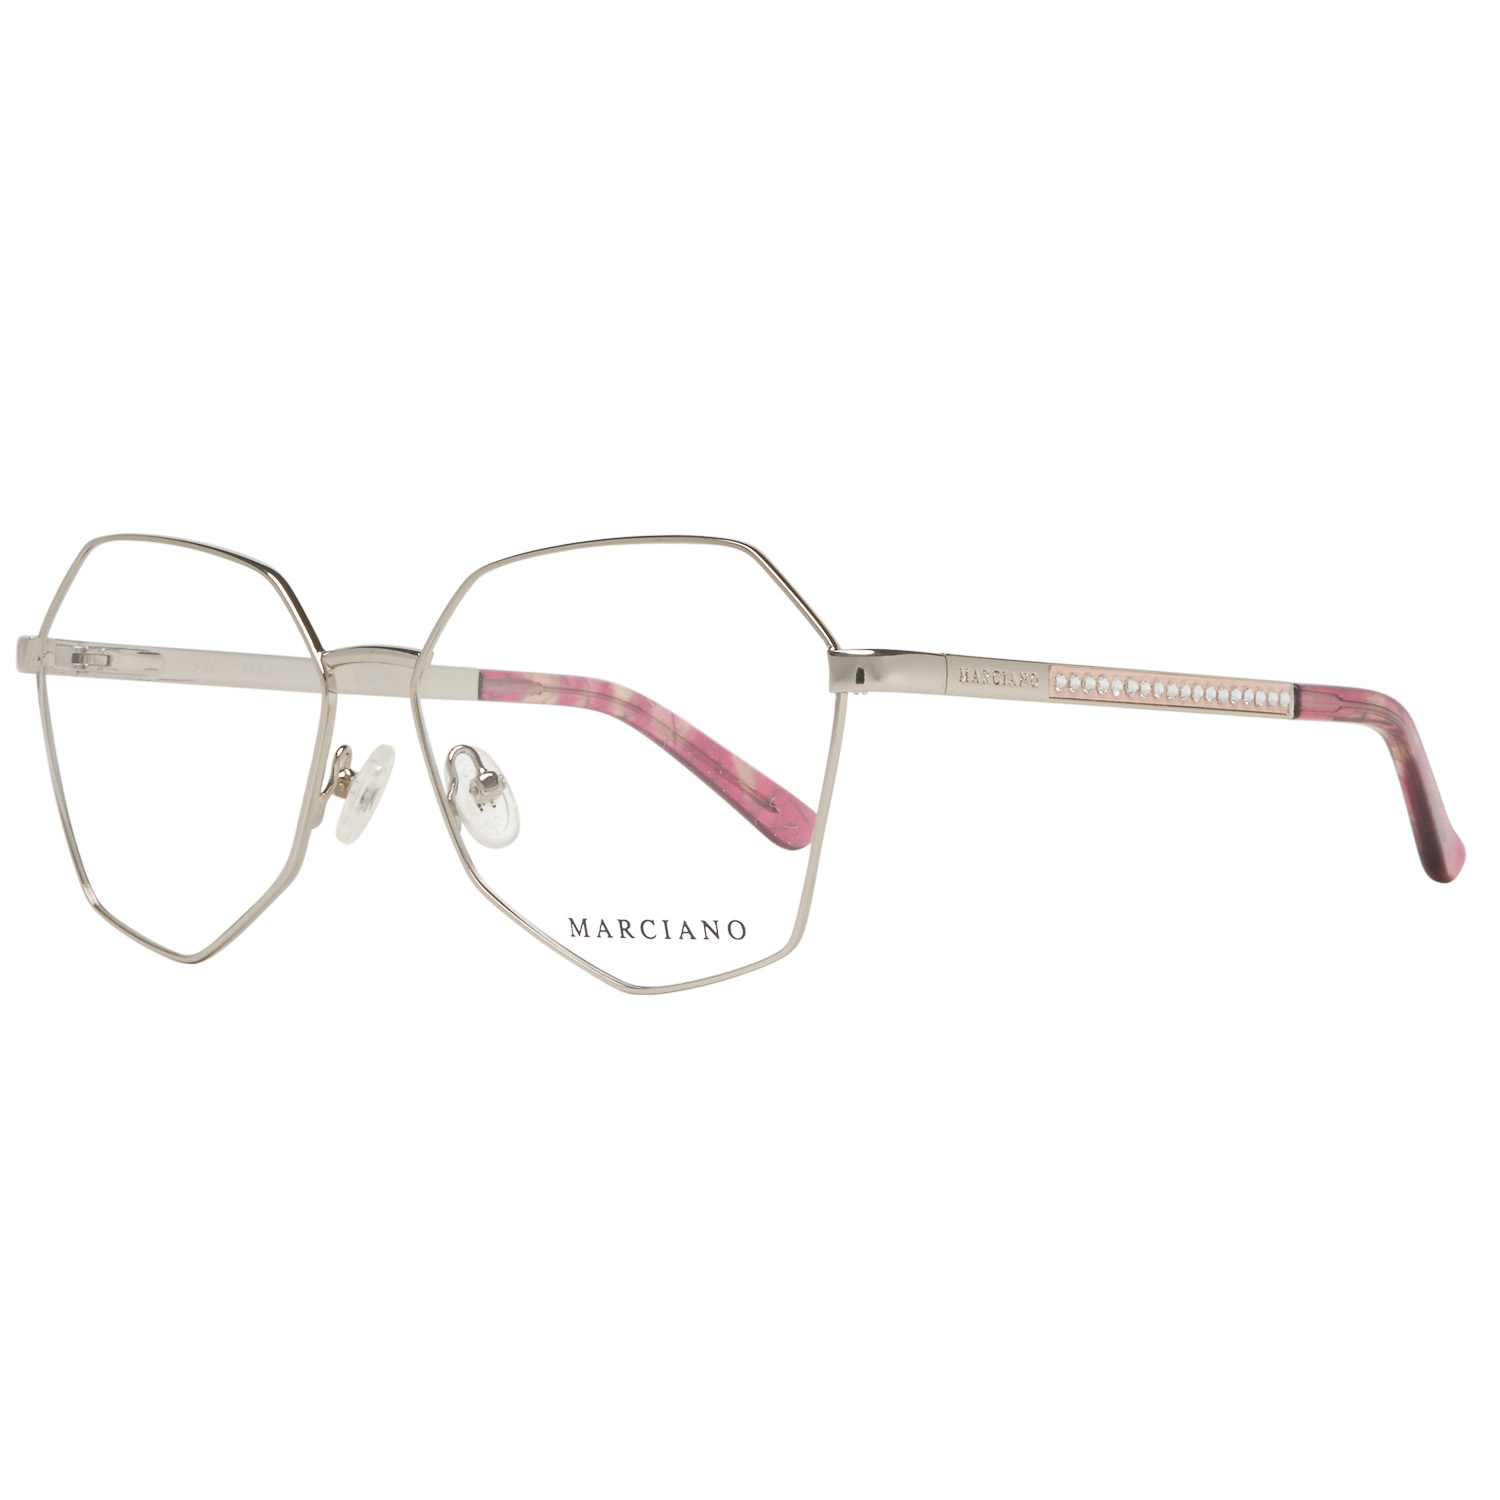 Guess by Marciano Optical Frame GM0321 010 56 Silver